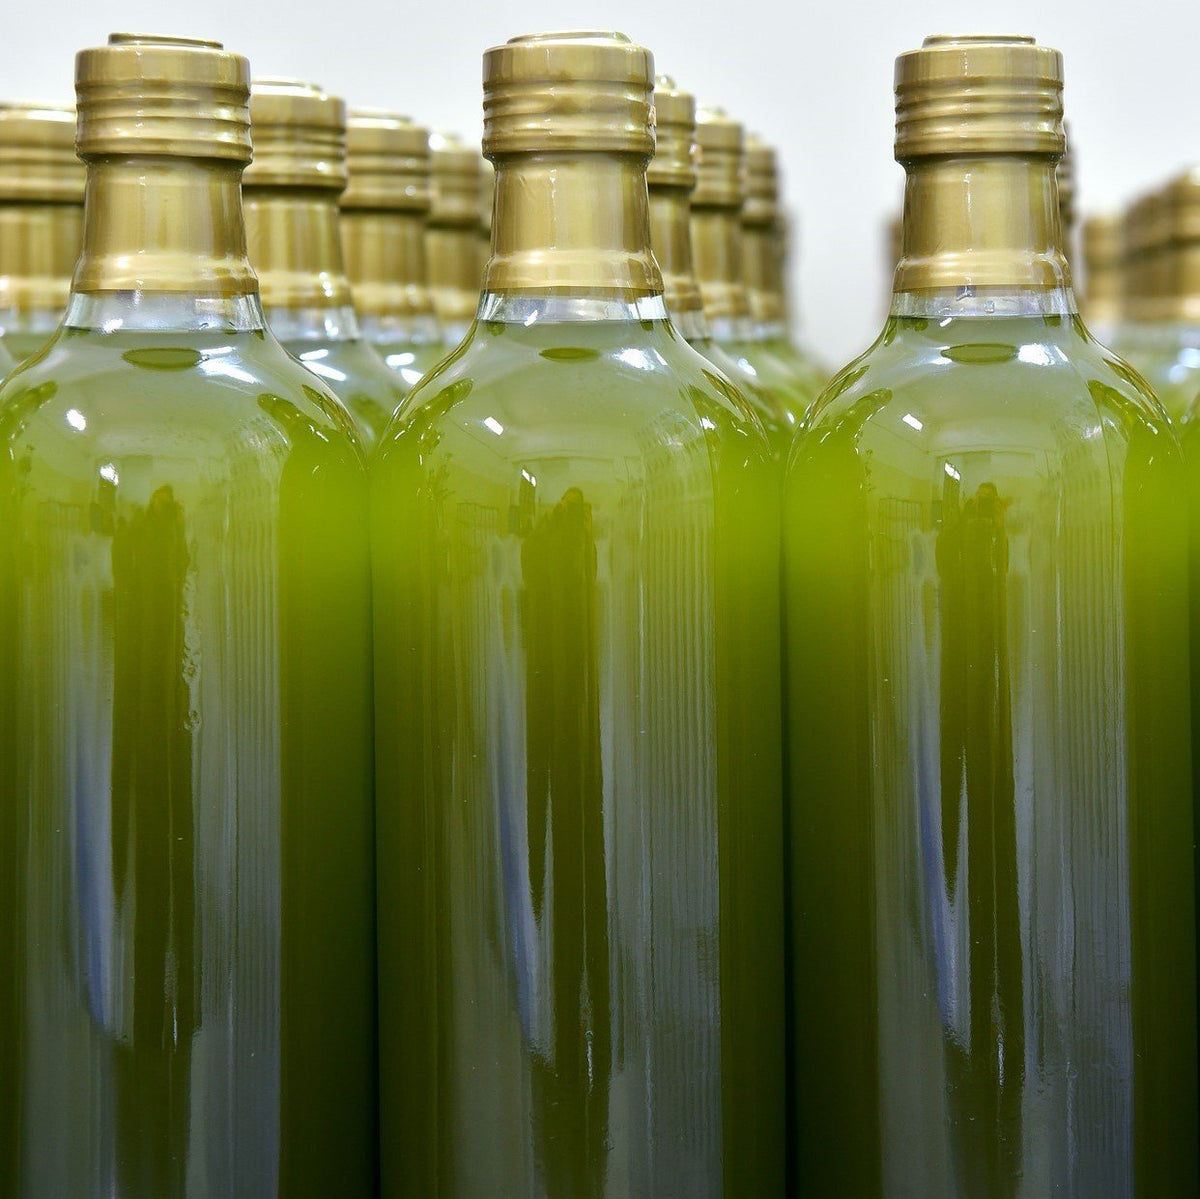 Is the fraudulent olive oil industry's biggest problem? | Marqt.no